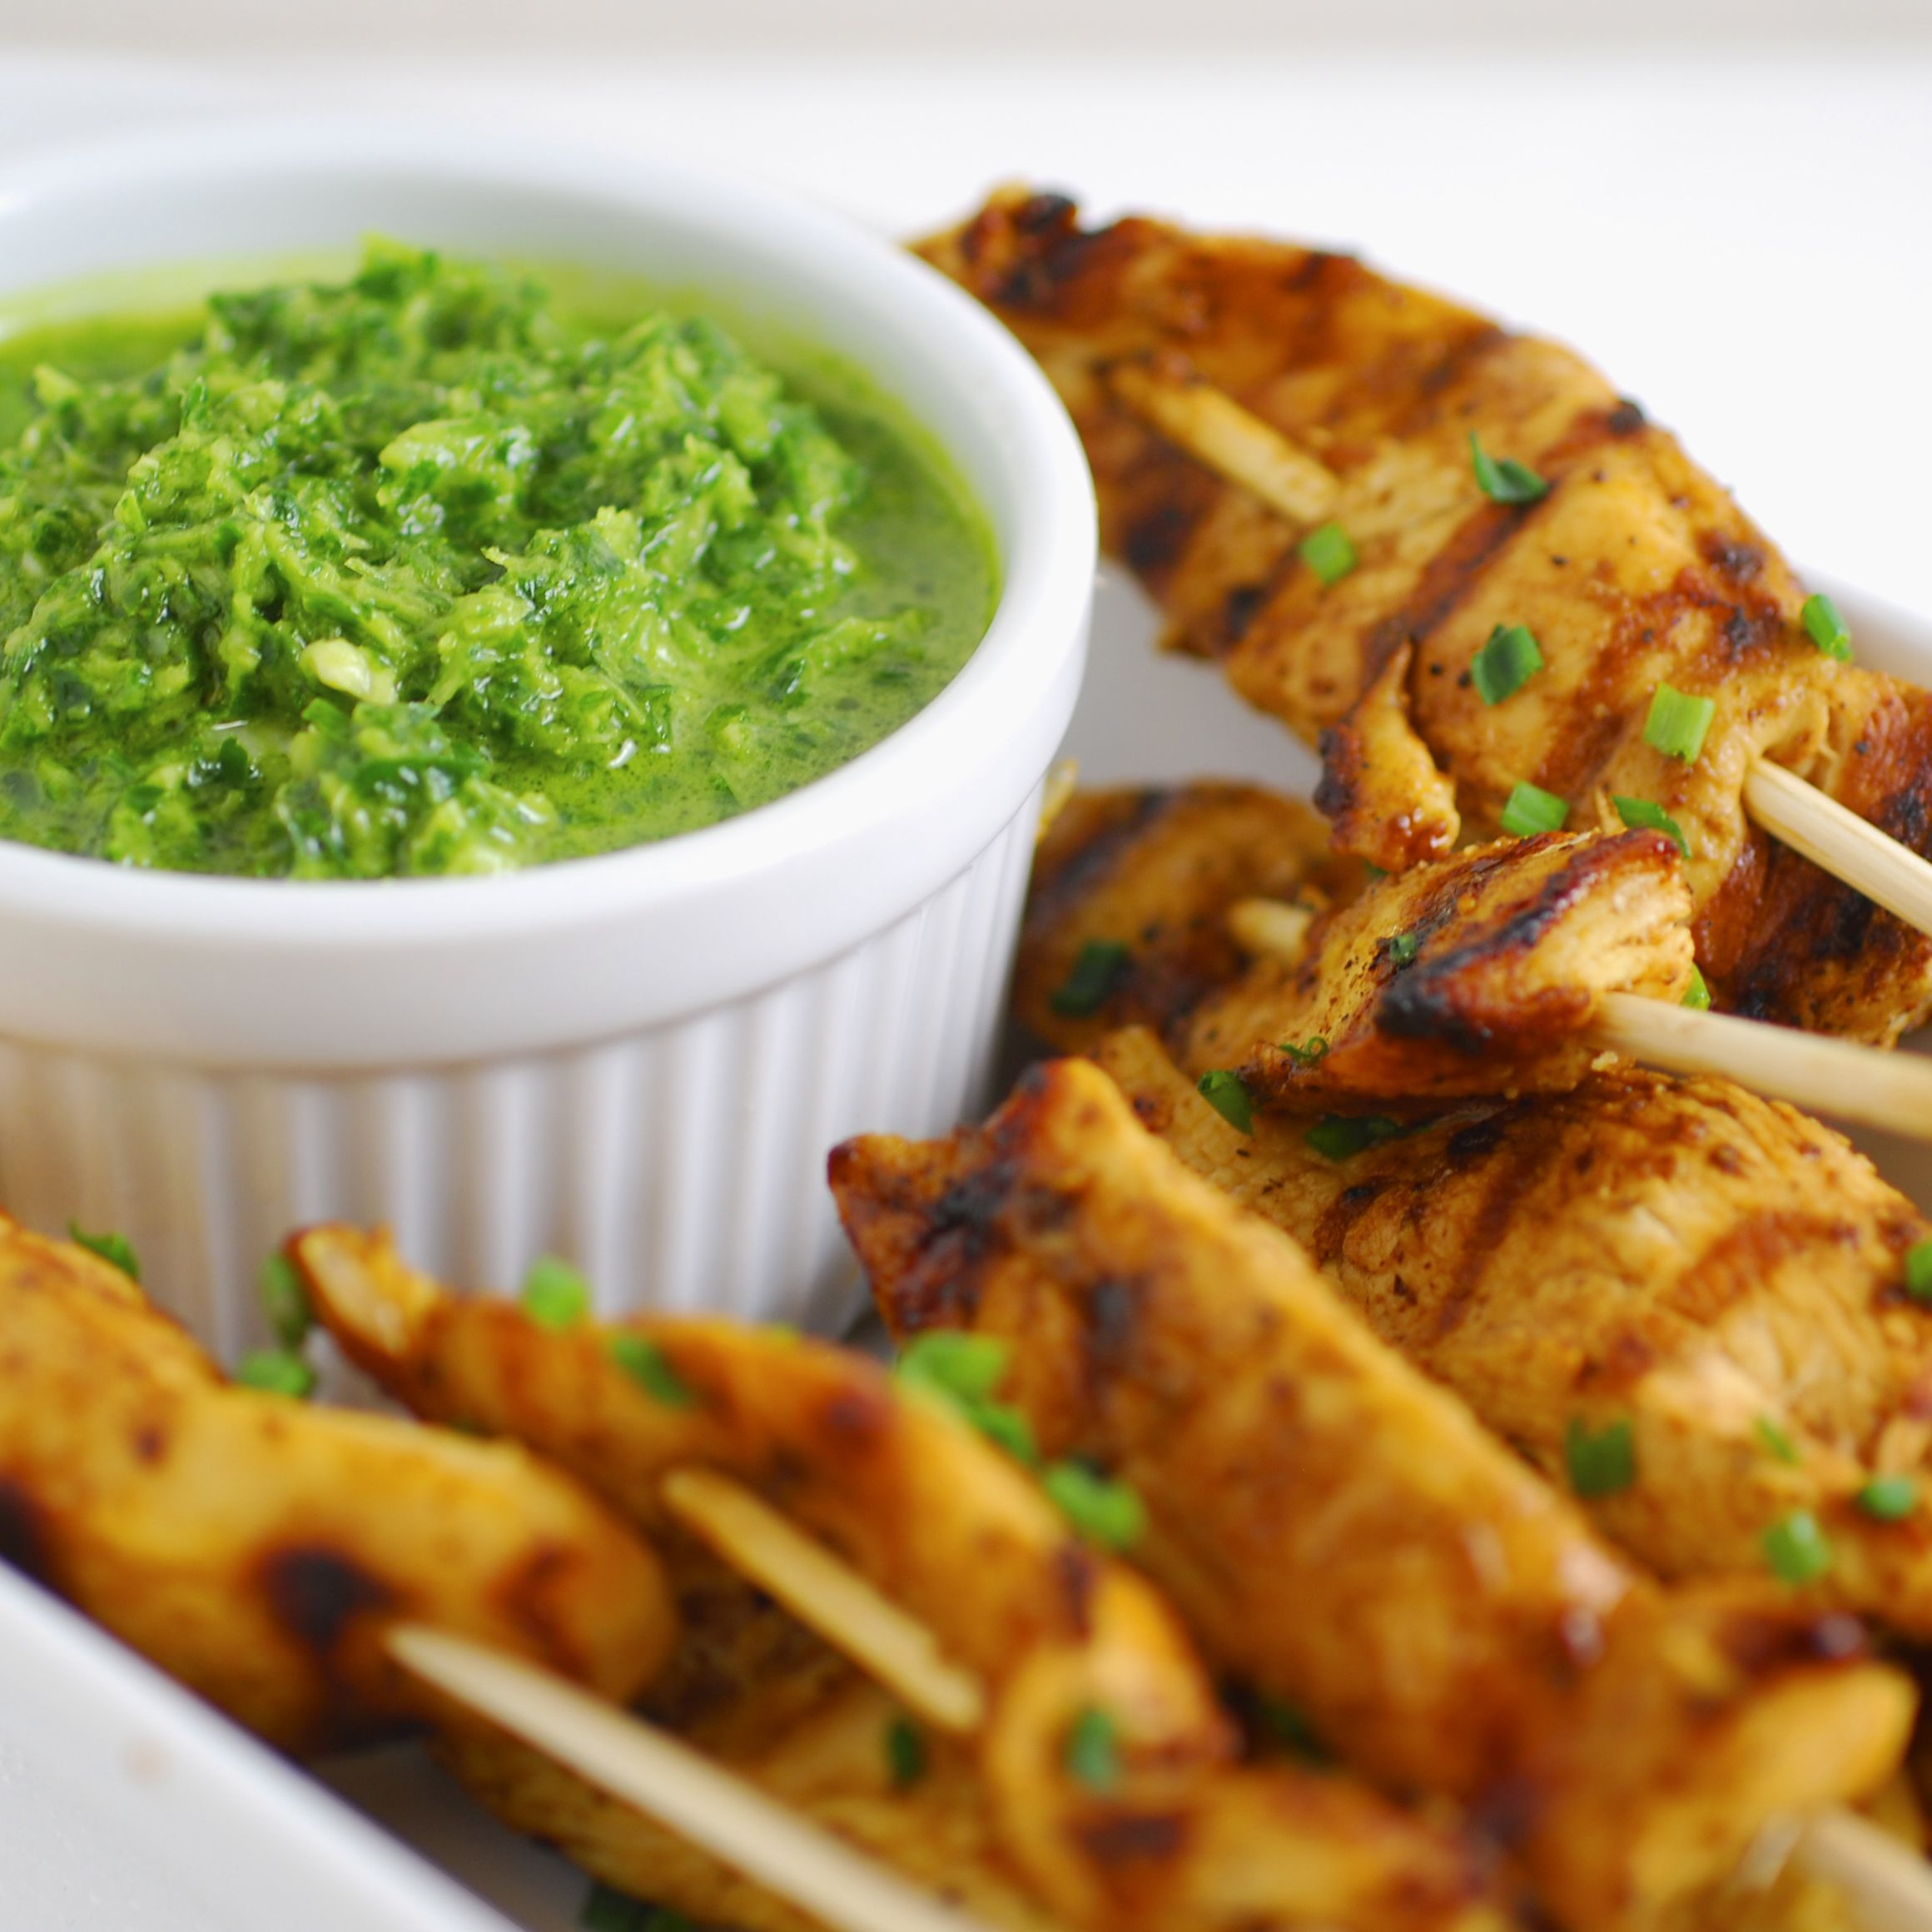 <p>Who doesn't love food on a stick? These chicken skewers are sure to be a hit. Chef Alejandra Ramos featured this delicious recipe in our Spring 2013 issue. The <em>chimichurri</em> sauce is an amazing extra kick to a simple dish. </p><p><strong>Ingredients</strong></p><p>For the sauce</p><p>1/2 bunch fresh parsley, stems removed</p><p>1/2 bunch fresh cilantro, stems removed</p><p>4 garlic cloves</p><p>1/2 cup olive oil</p><p>1/2 cup red wine vinegar</p><p>1 teaspoon kosher salt</p><p>For the chicken</p><p>1 pound chicken tenders</p><p>3 tablespoons olive oil</p><p>1 teaspoon kosher salt</p><p>1 teaspoon ground black pepper</p><p>1 teaspoon ground cumin</p><p>Juice of 2 limes</p><p>Wooden skewers</p><p><strong>Preparation</strong></p><p>Make the sauce: combine all ingredients in a blender or food processor and process until coarsely chopped. Set aside.</p><p>Cut chicken tenders in half and toss in a bowl with olive oil, salt, black pepper, cumin, and lime juice. Heat a grill pan or skillet, and cook chicken 3-4 minutes on each side until cooked through and slightly charred. Once fully cooked, thread chicken onto skewers and serve with sauce on the side for dipping. </p>